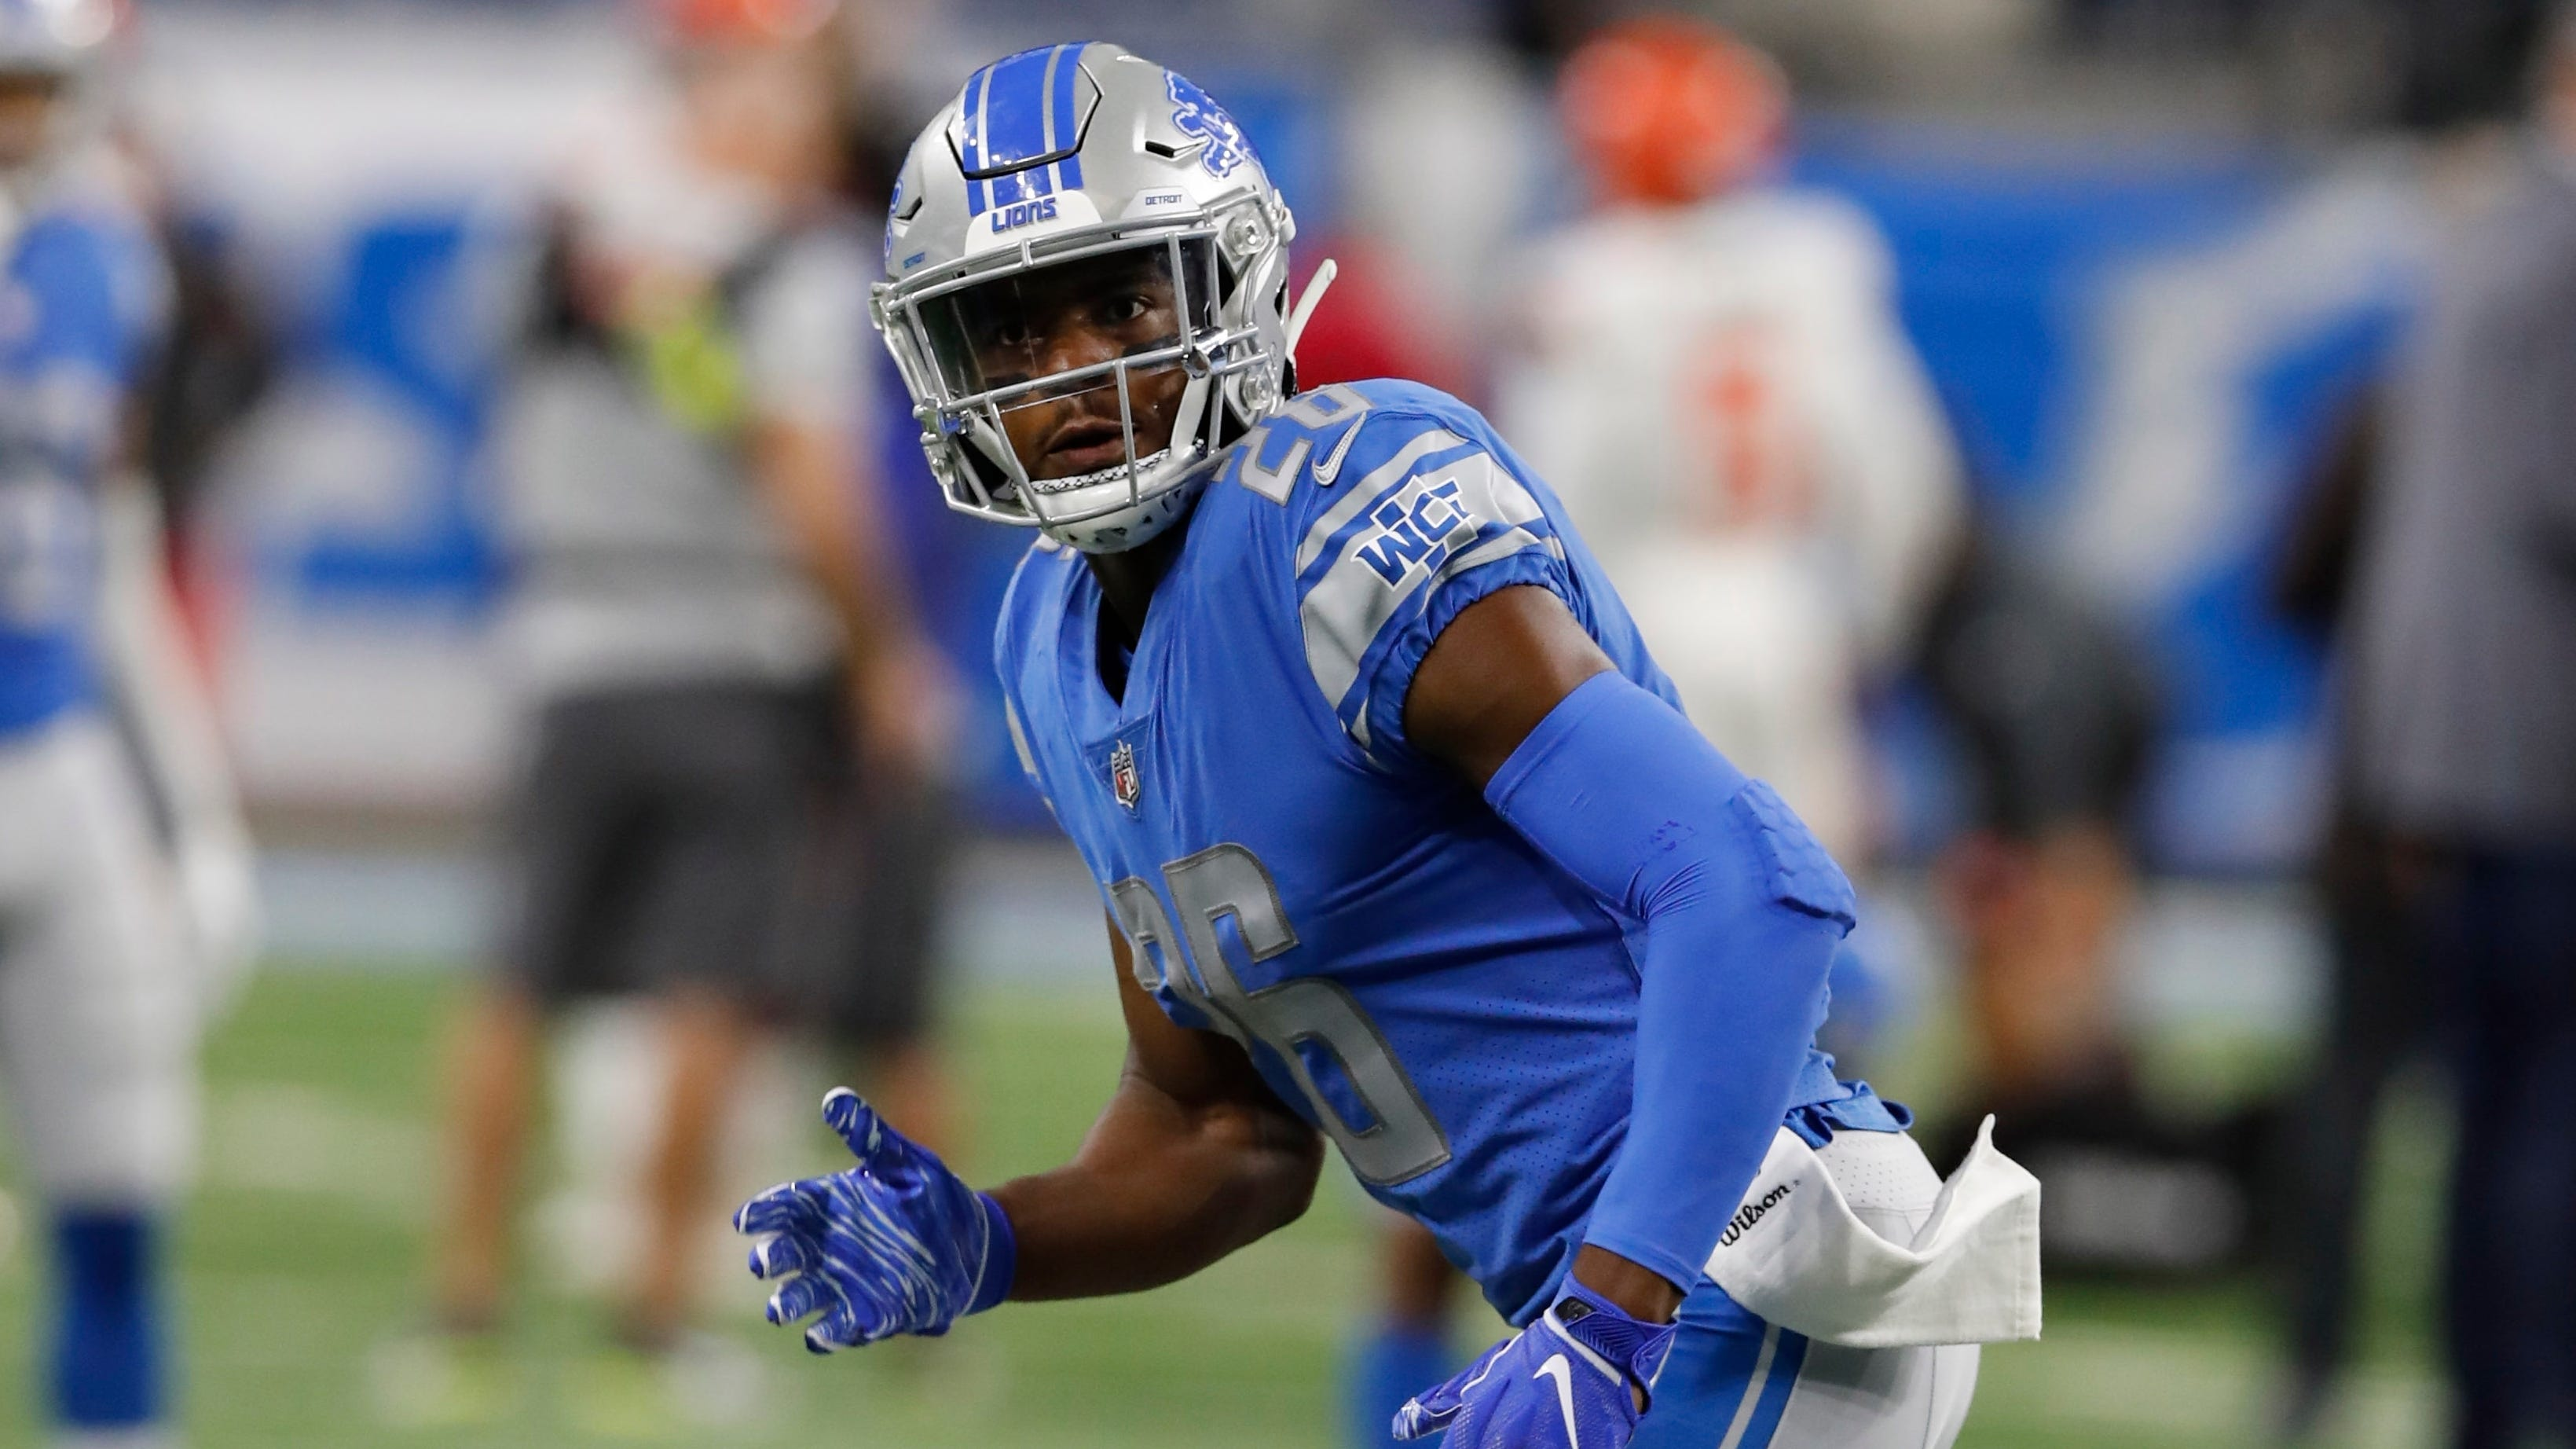 Cornerback DeShawn Shead, a free-agent addition this offseason, rejoins the Lions after he was one of the team's more surprising cuts at the end of the preseason.